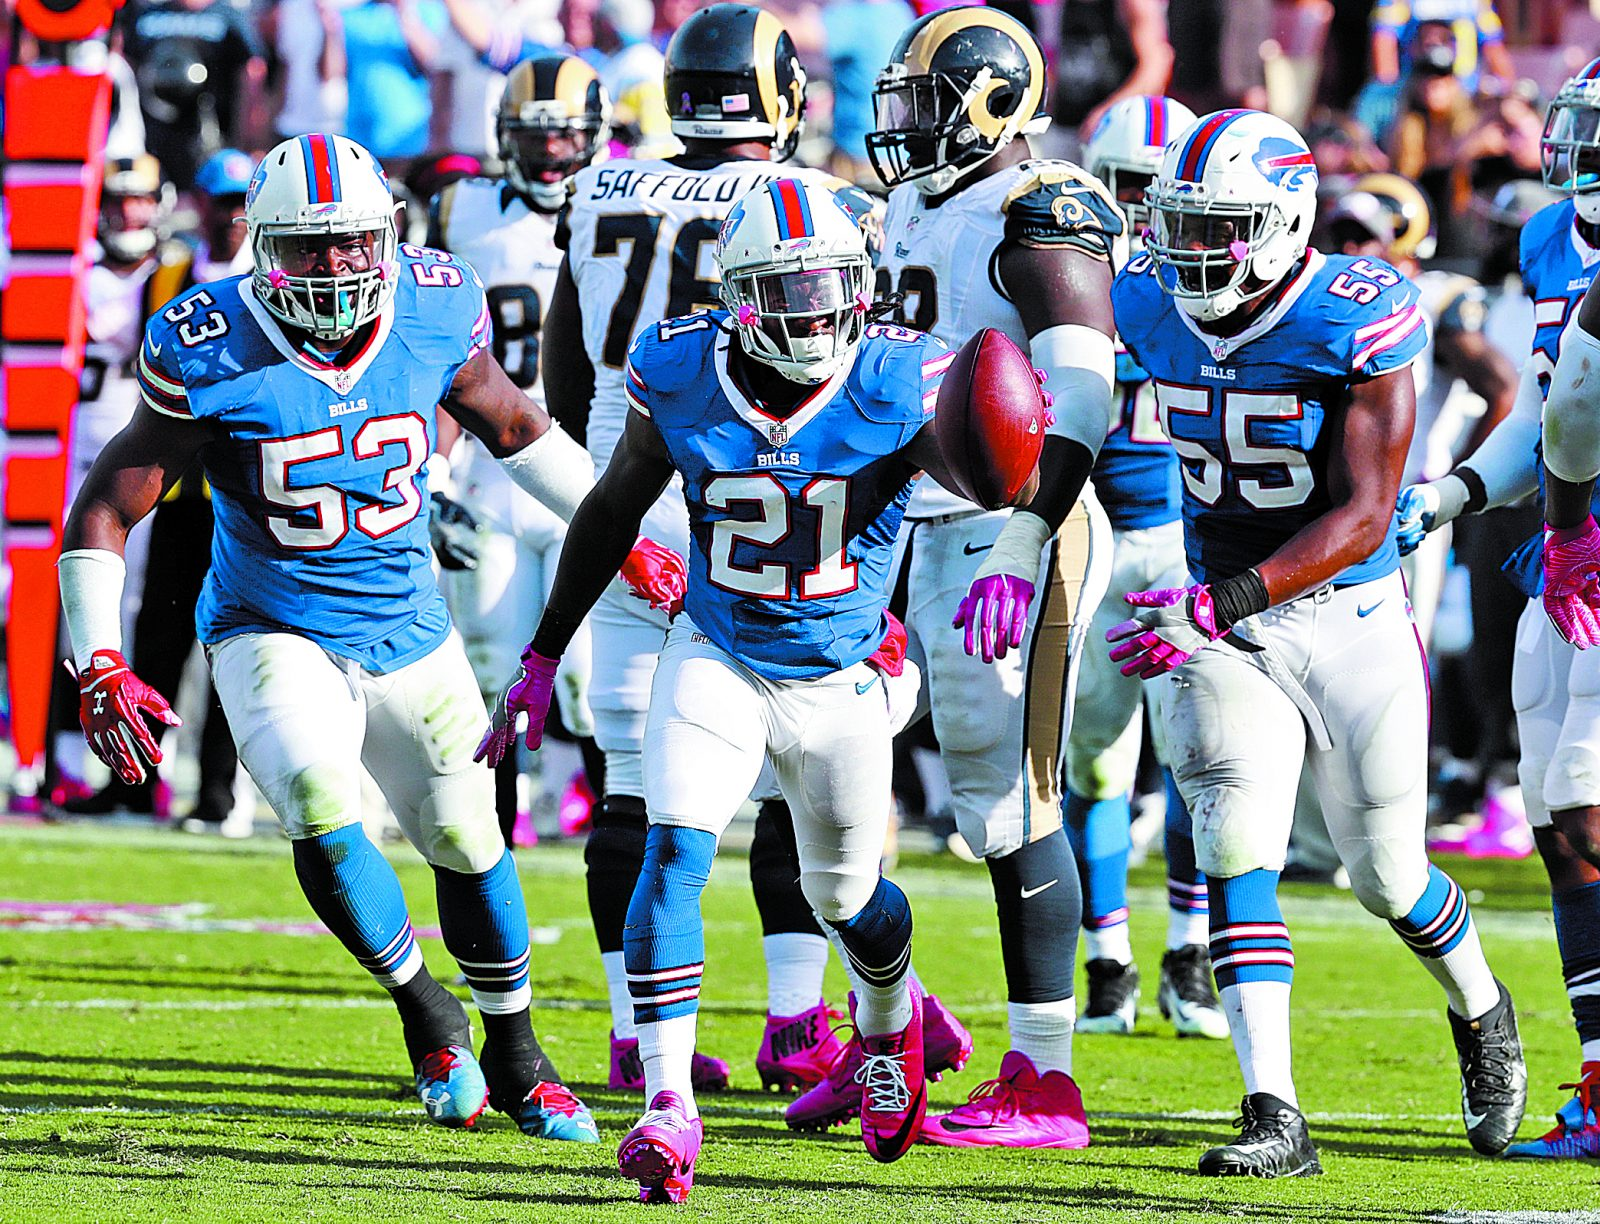 Former Buffalo Bills defensive back Nickell Robey-Coleman (21) celebrates a turnover in the fourth quarter of the Oct. 9 win over the Los Angeles Rams. (James P. McCoy/ Buffalo News)